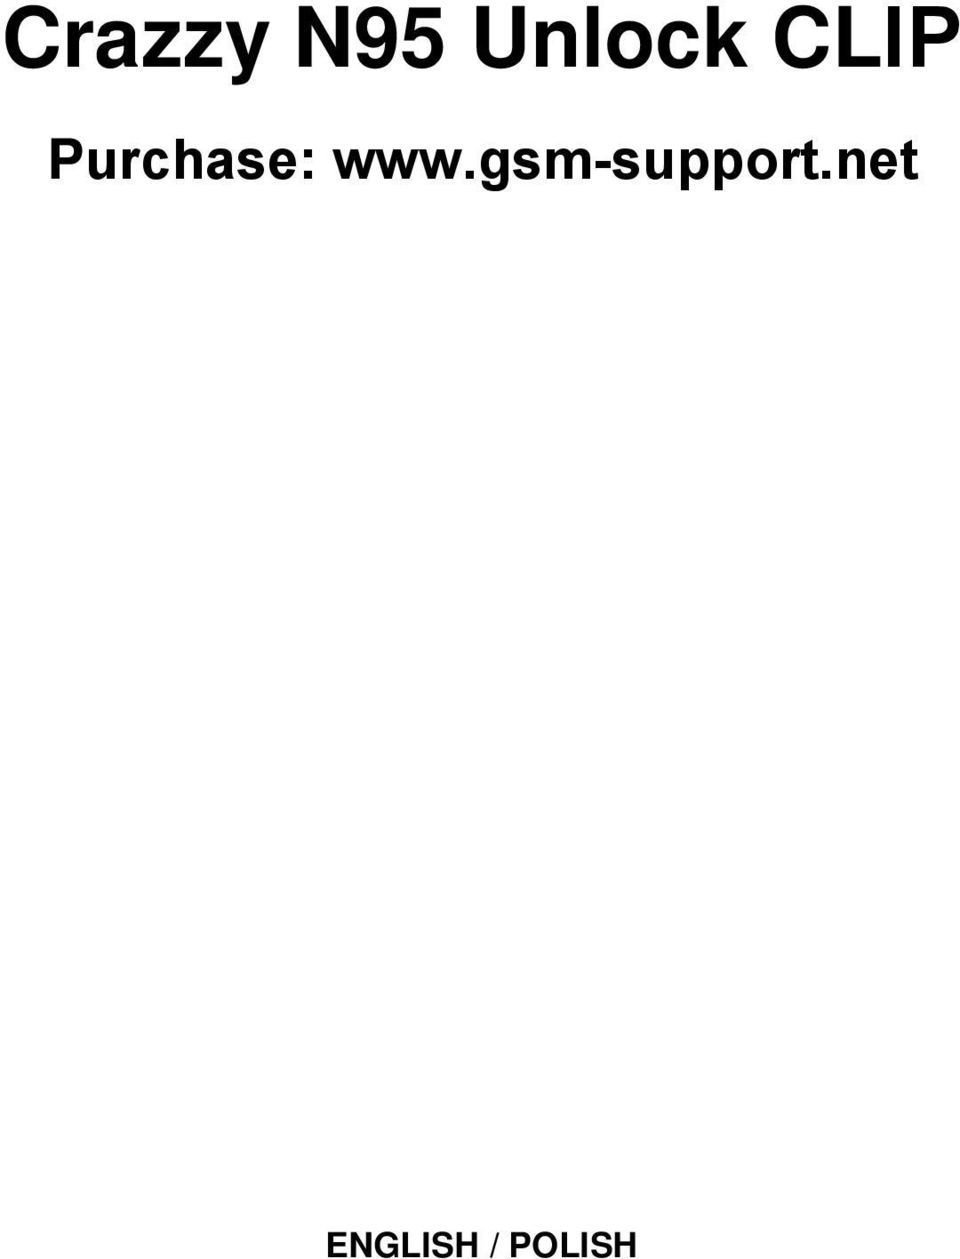 www.gsm-support.